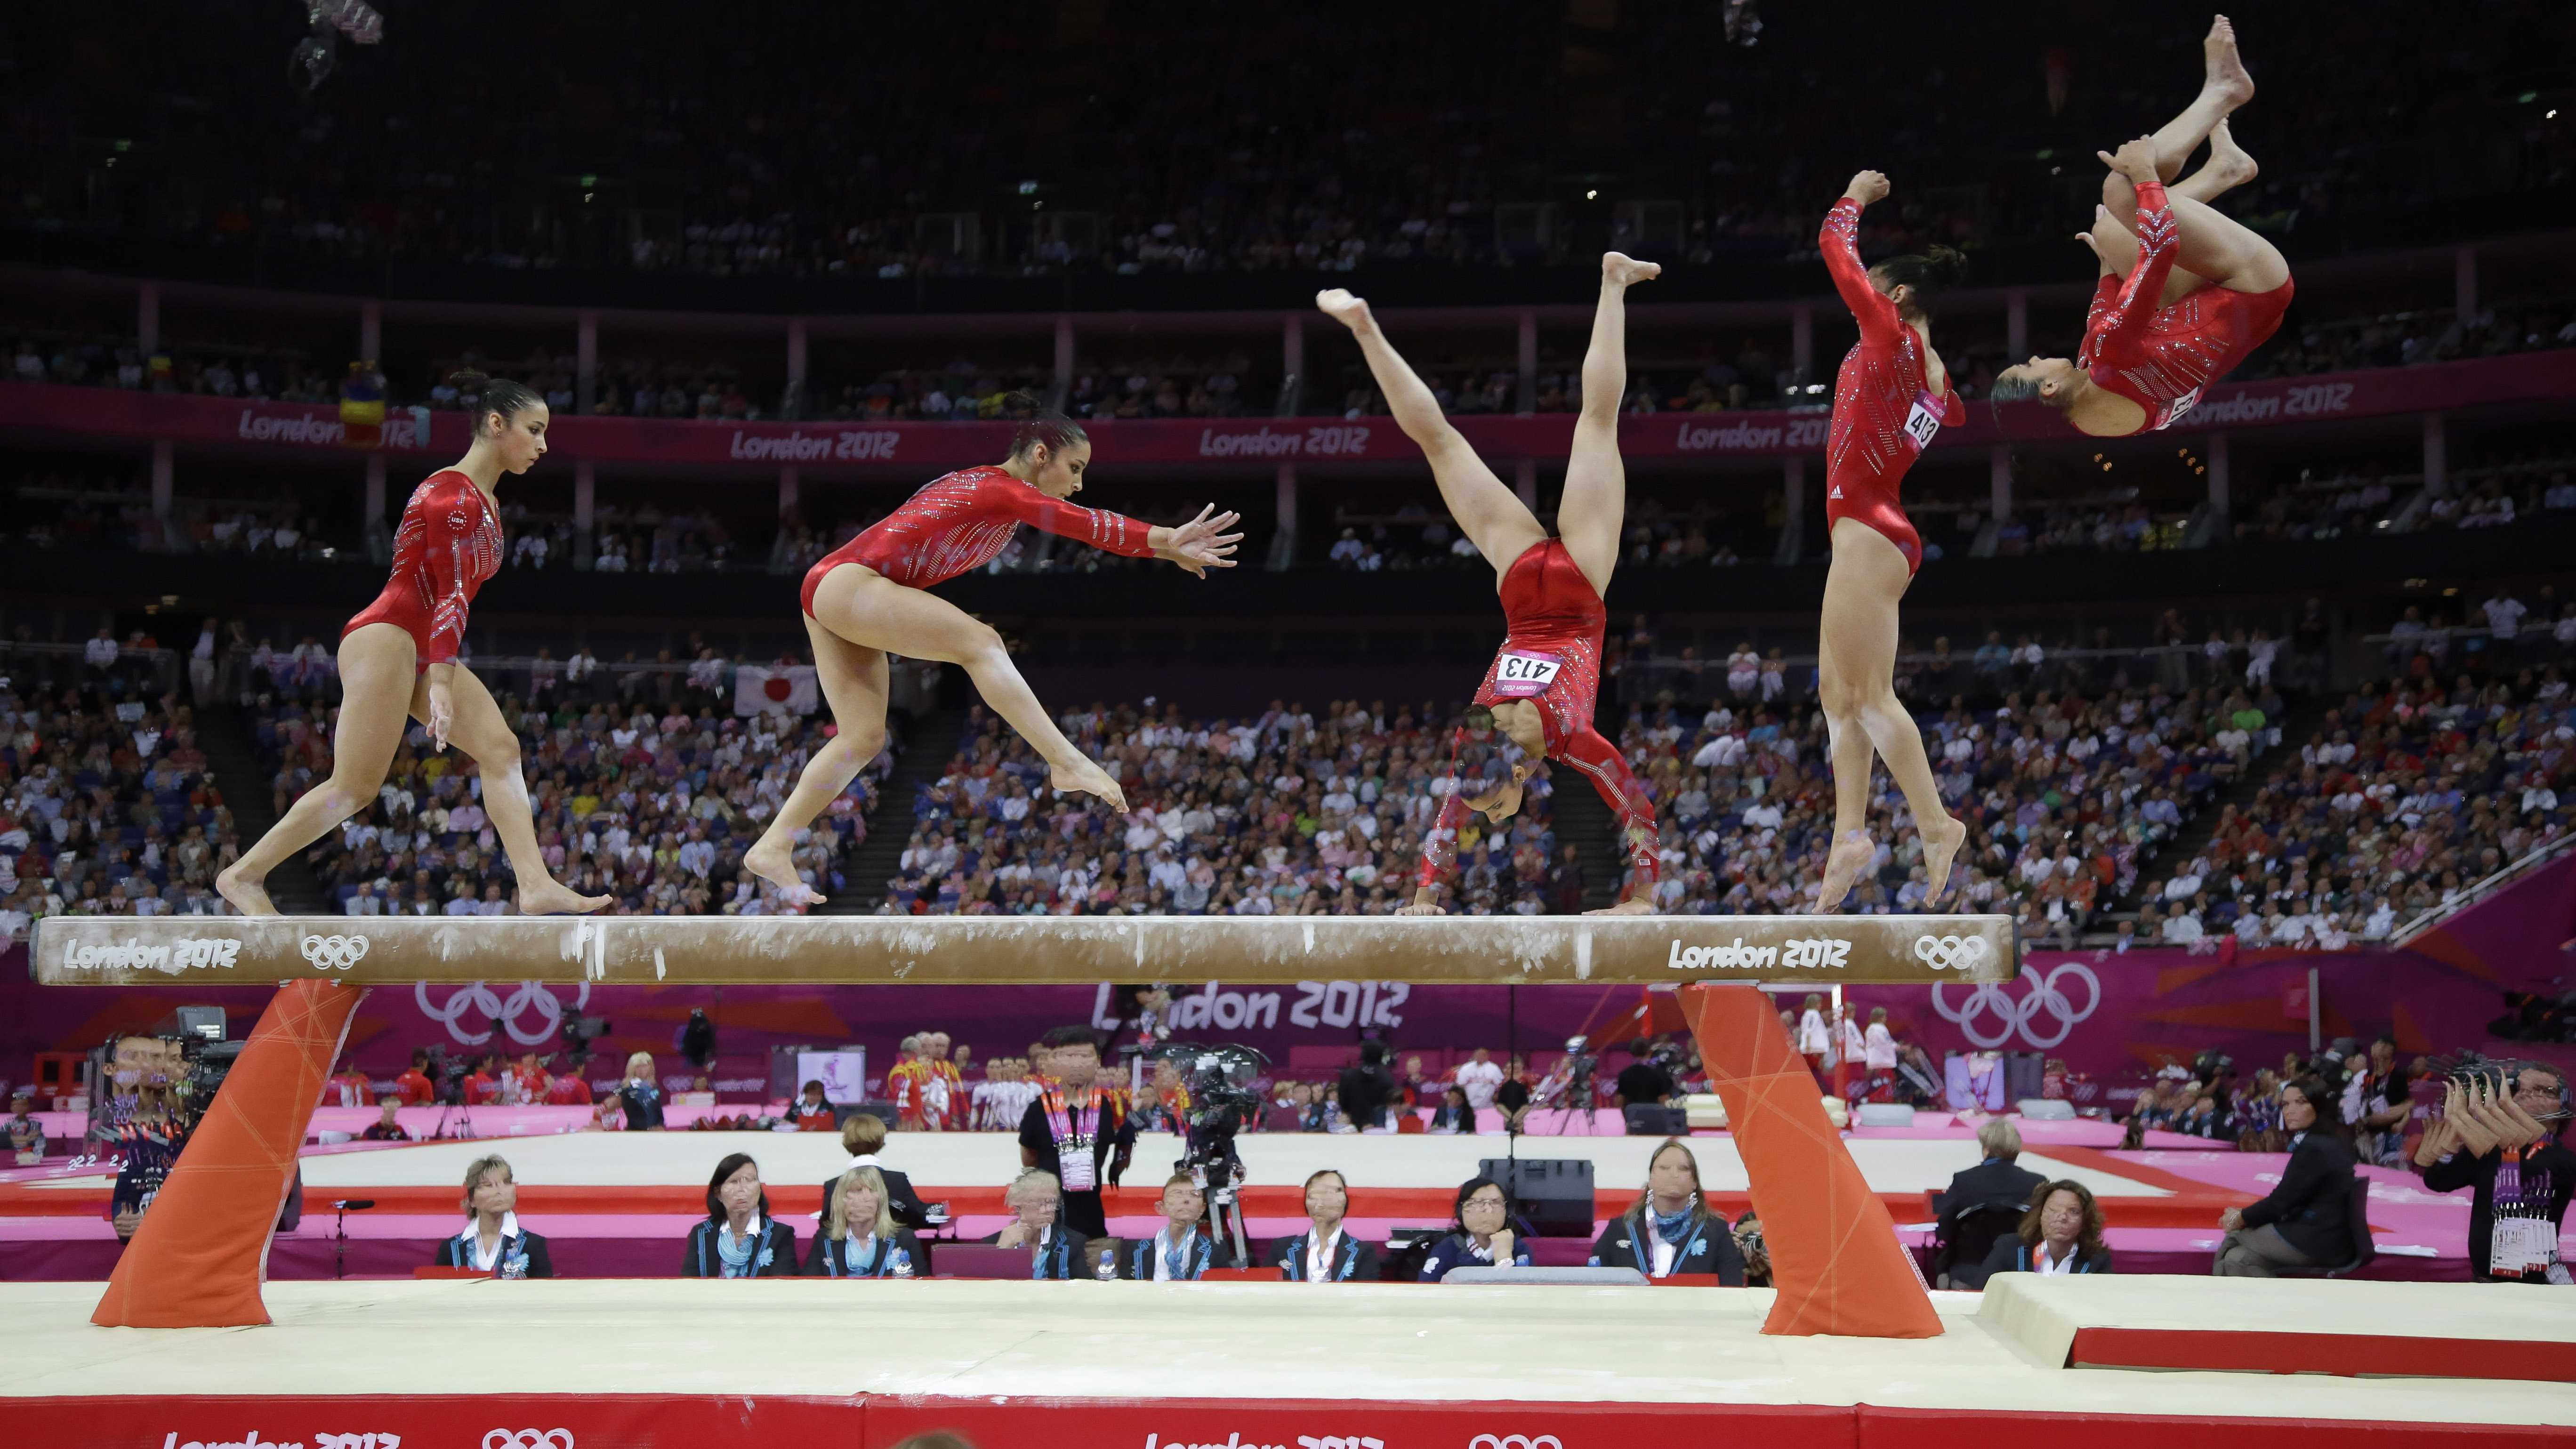 In this multiple exposure photo, U.S. gymnast Alexandra Raisman performs on the balance beam during the Artistic Gymnastics women's team final at the 2012 Summer Olympics, Tuesday, July 31, 2012, in London.